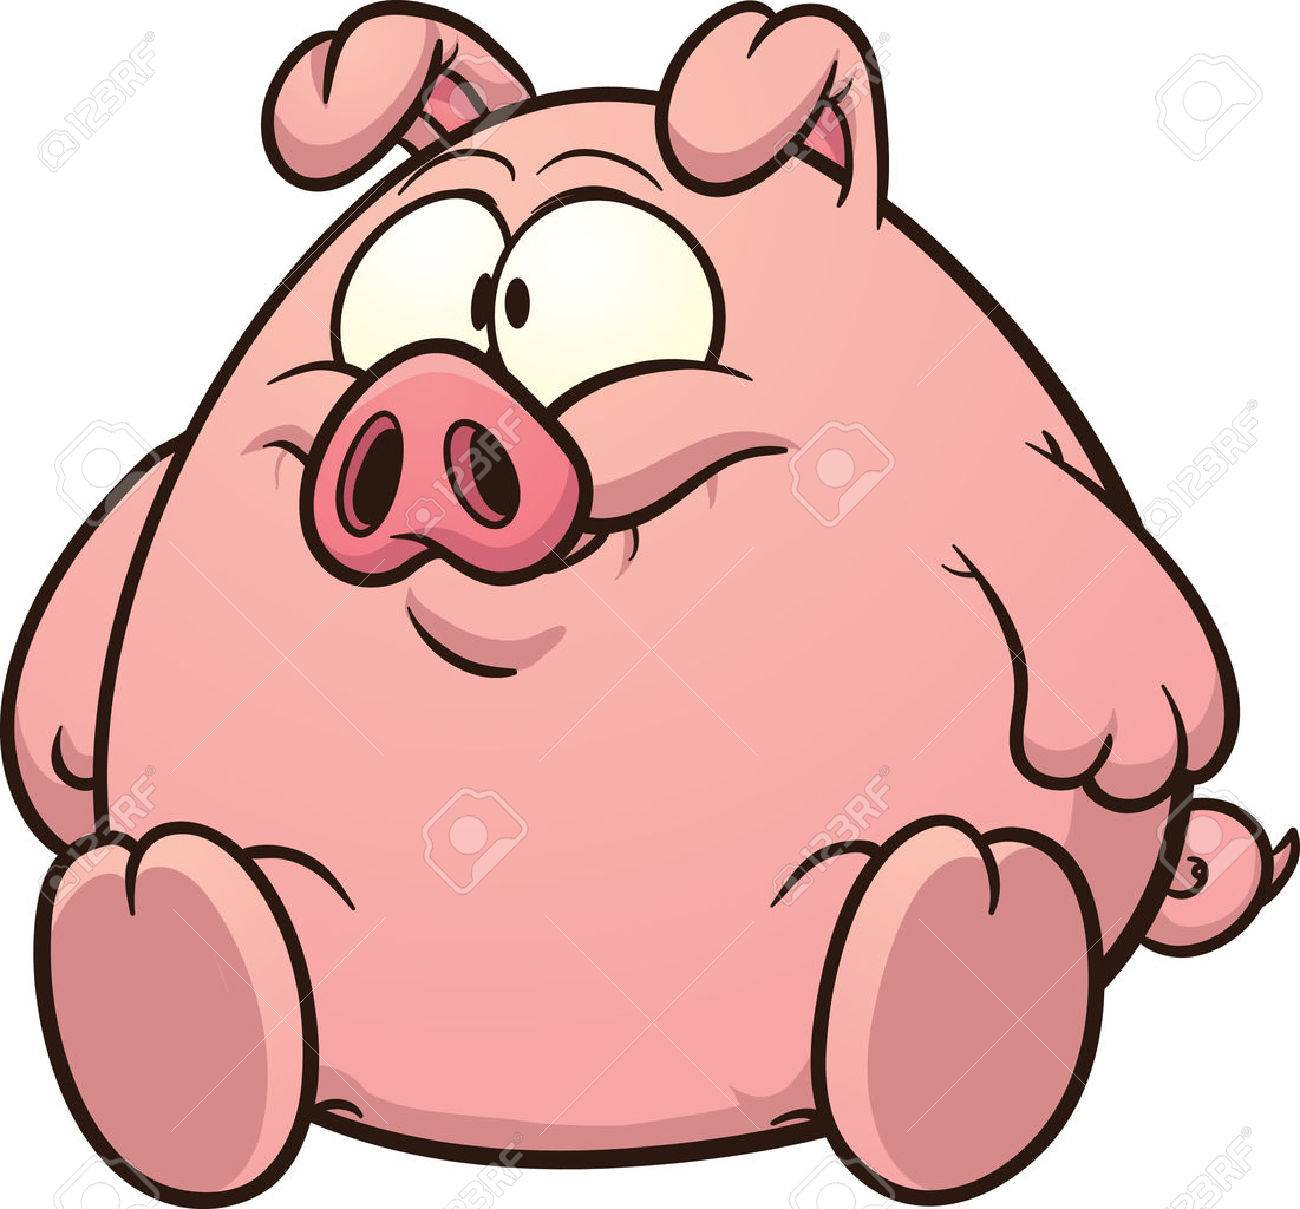 Fat pig clip art Vector cartoon illustration with simple gradients...